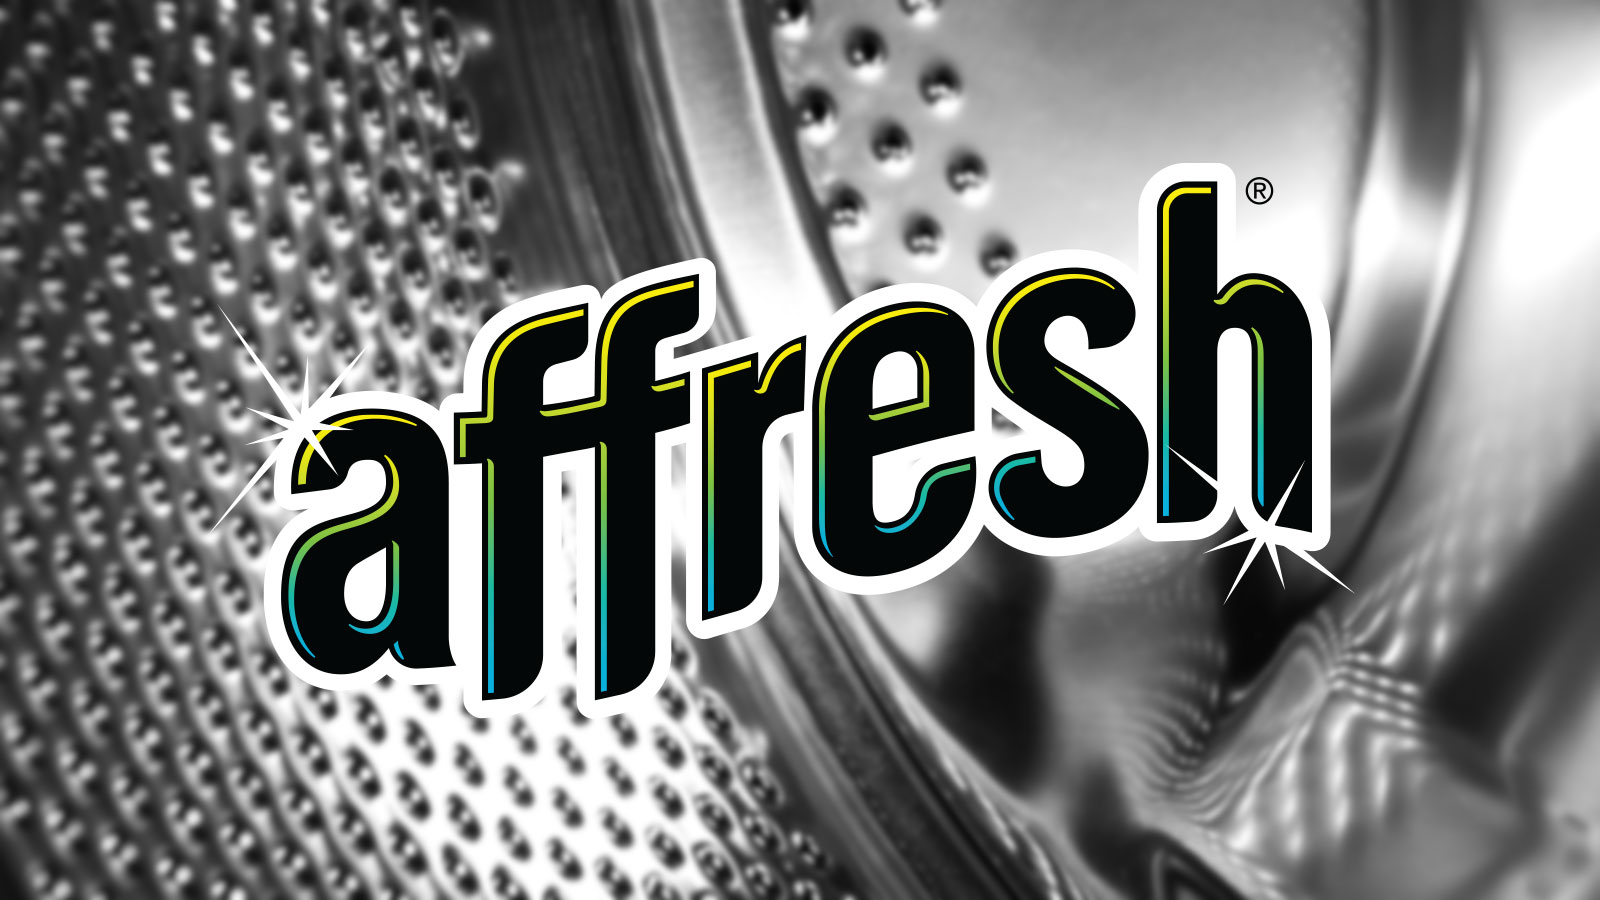 Affresh Cleaners